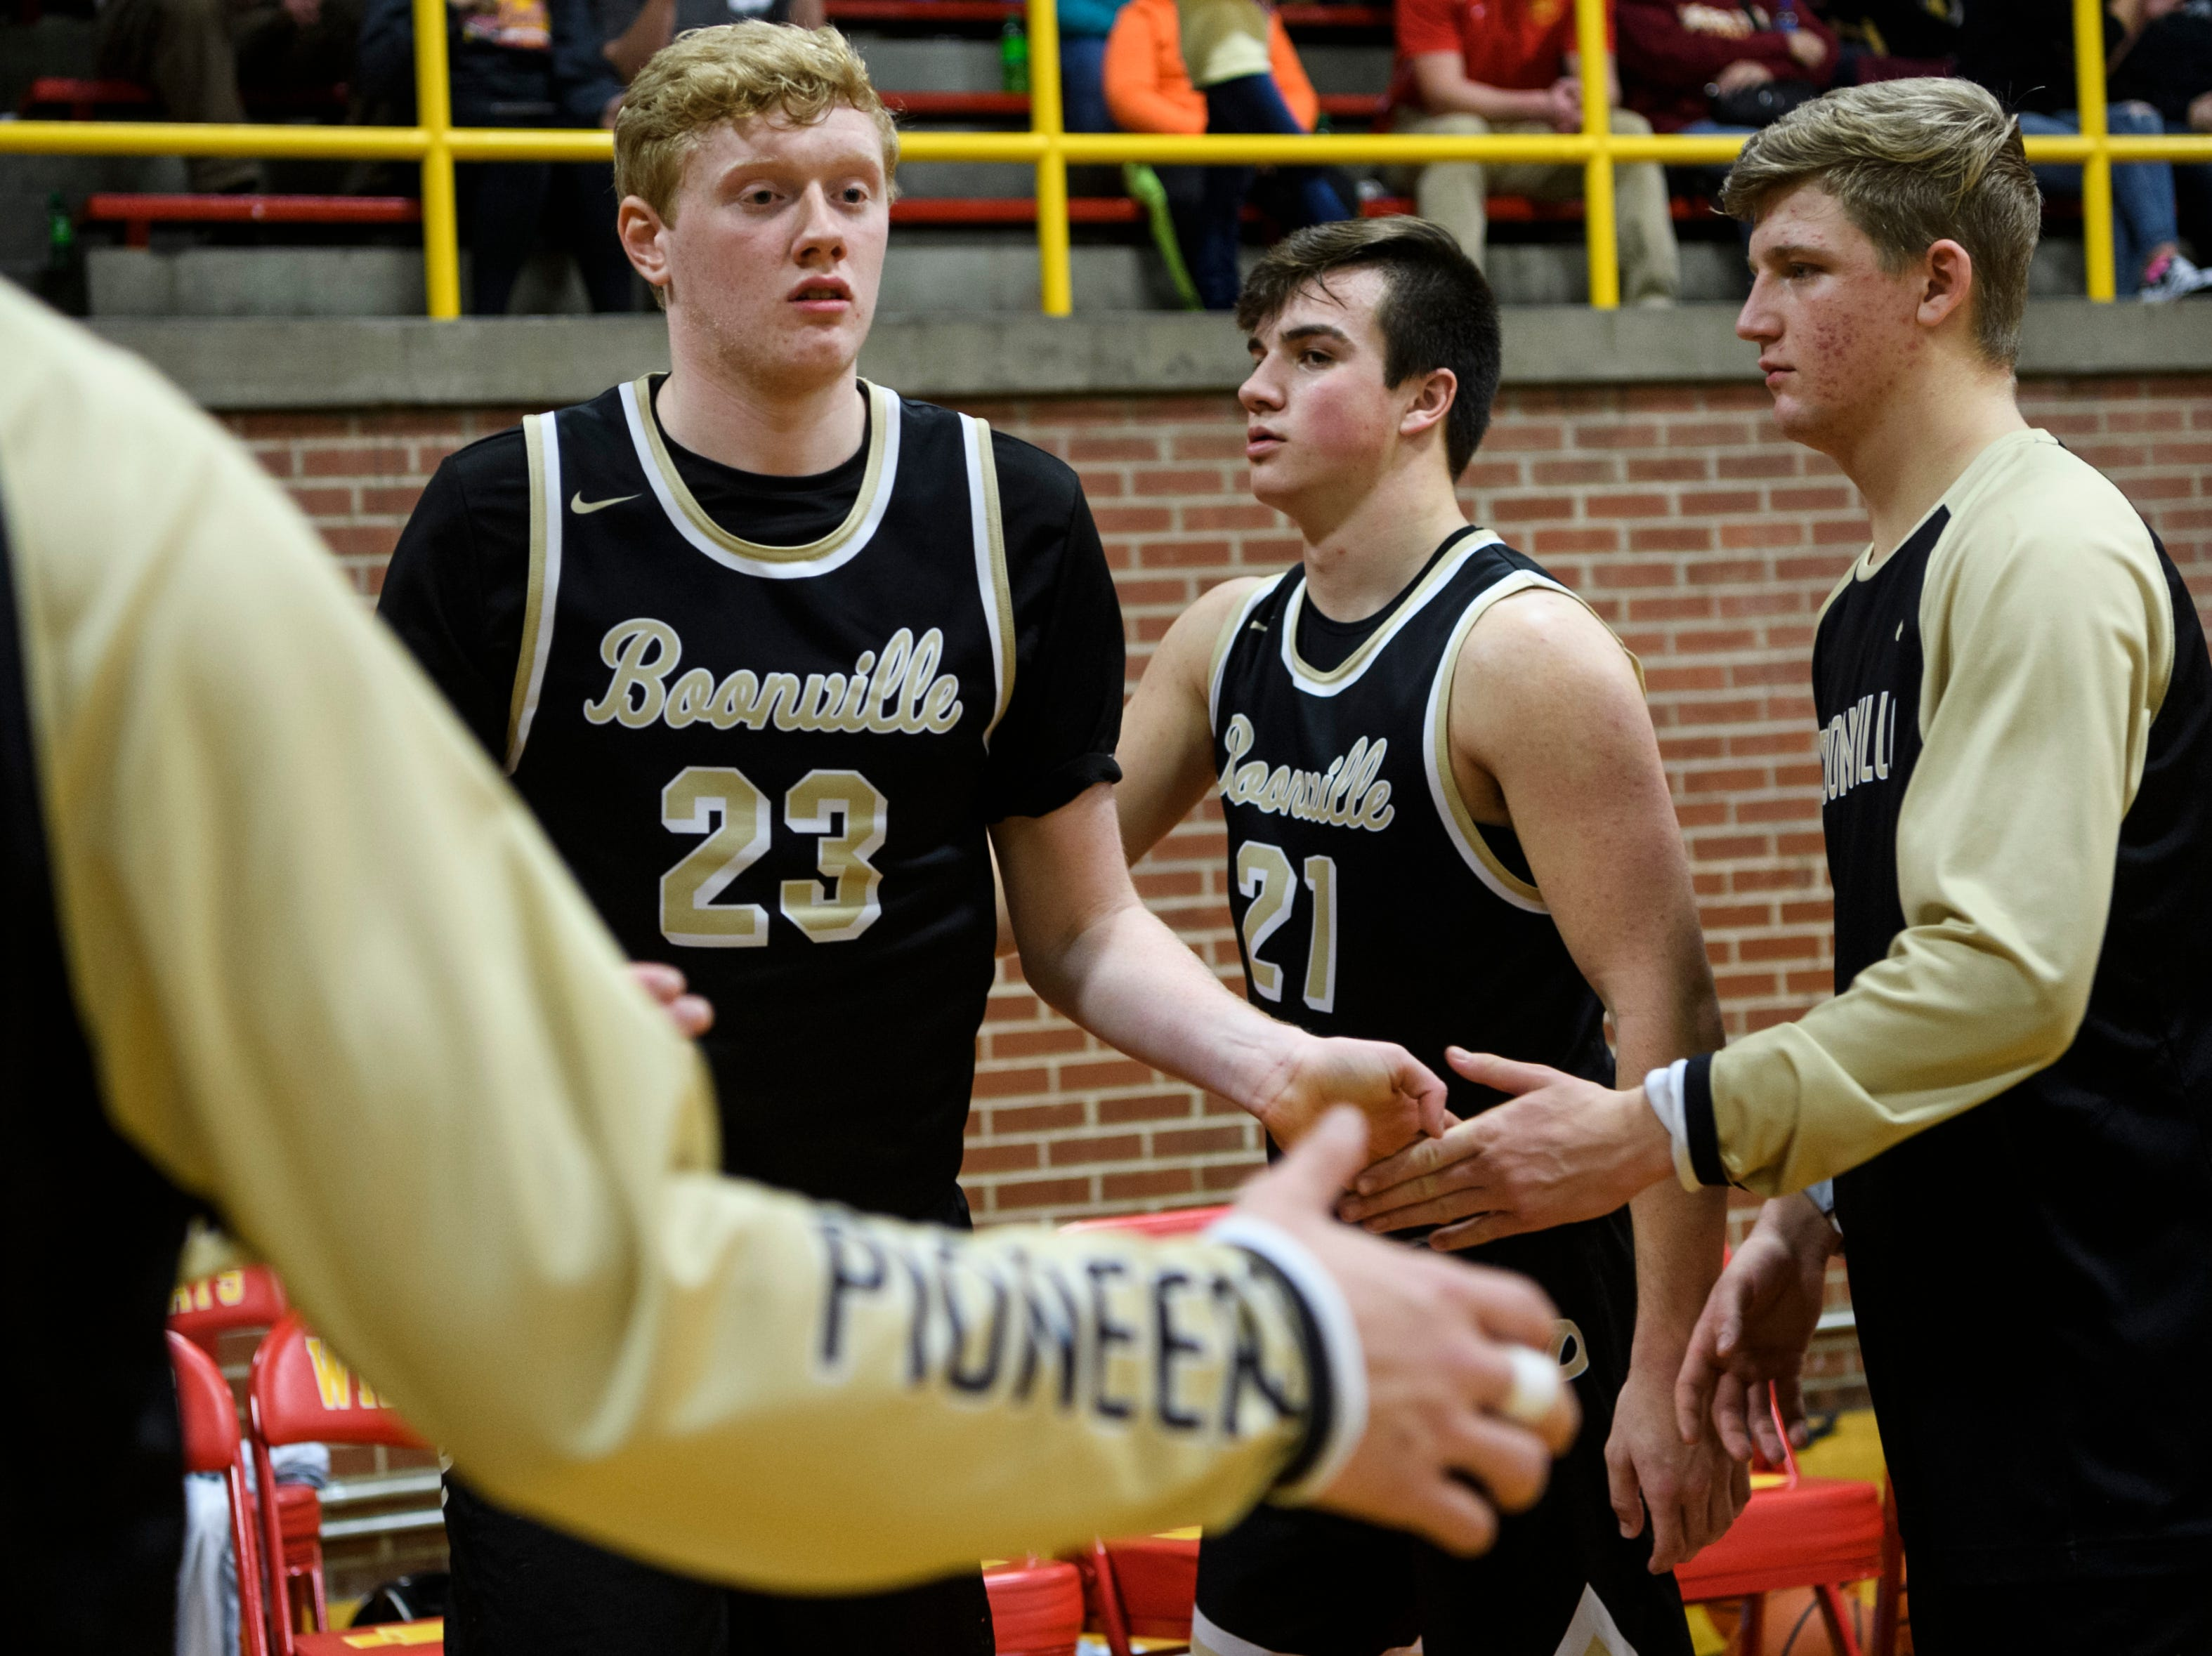 Boonville's Hunter Bruce (23) receives high-fives from his teammates as their starting line up is announced before taking on the Mater Dei Wildcats at Mater Dei High School in Evansville, Ind., Saturday, Jan. 5, 2019. The Wildcats defeated the Pioneers, 93-65.